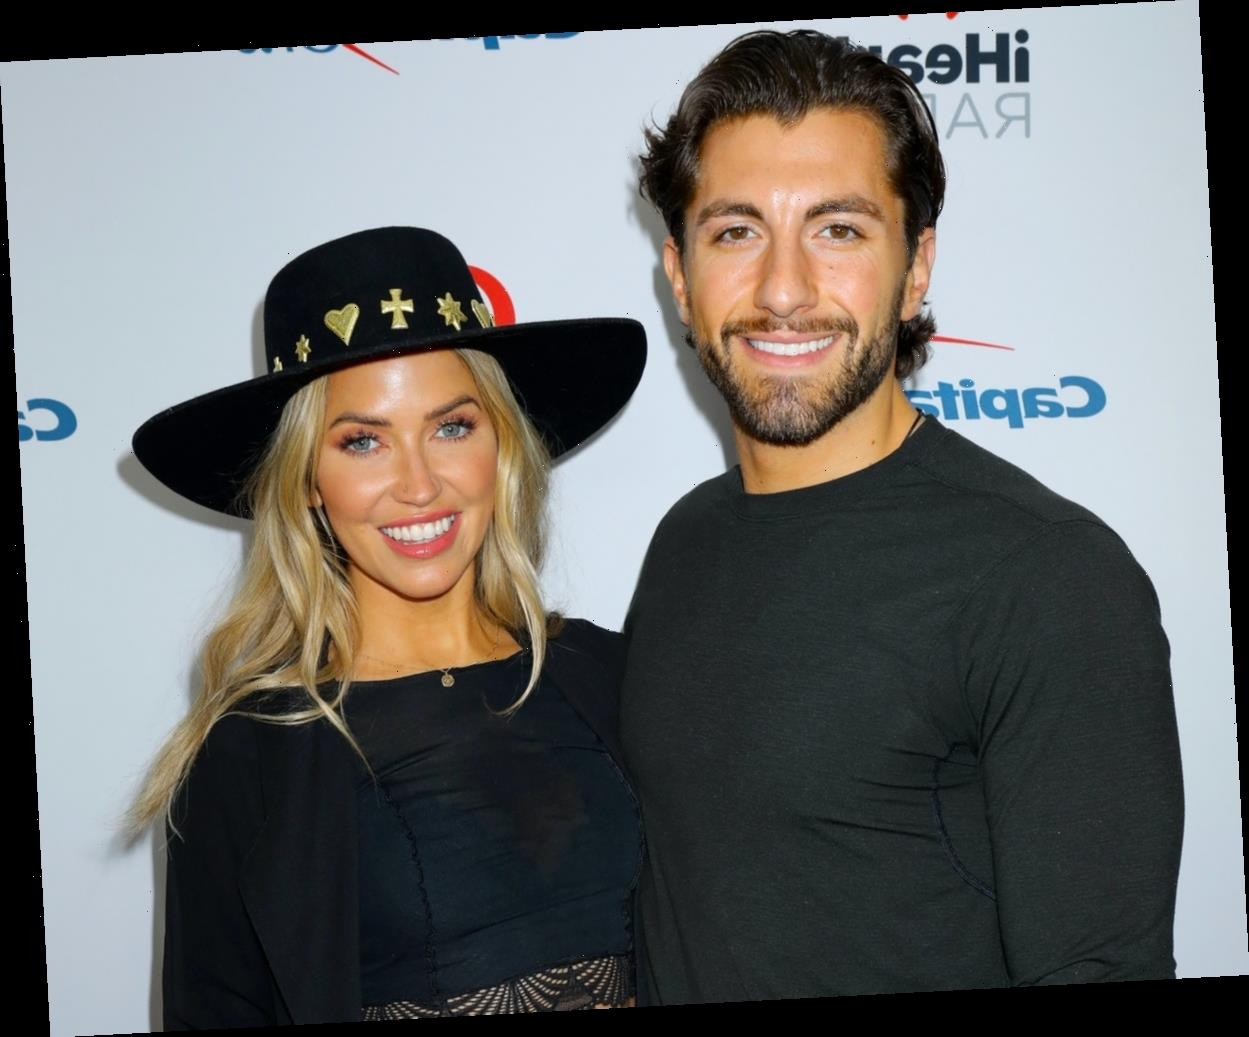 Kaitlyn Bristowe & Jason Tartick's Quotes About Each Other Are So Sweet